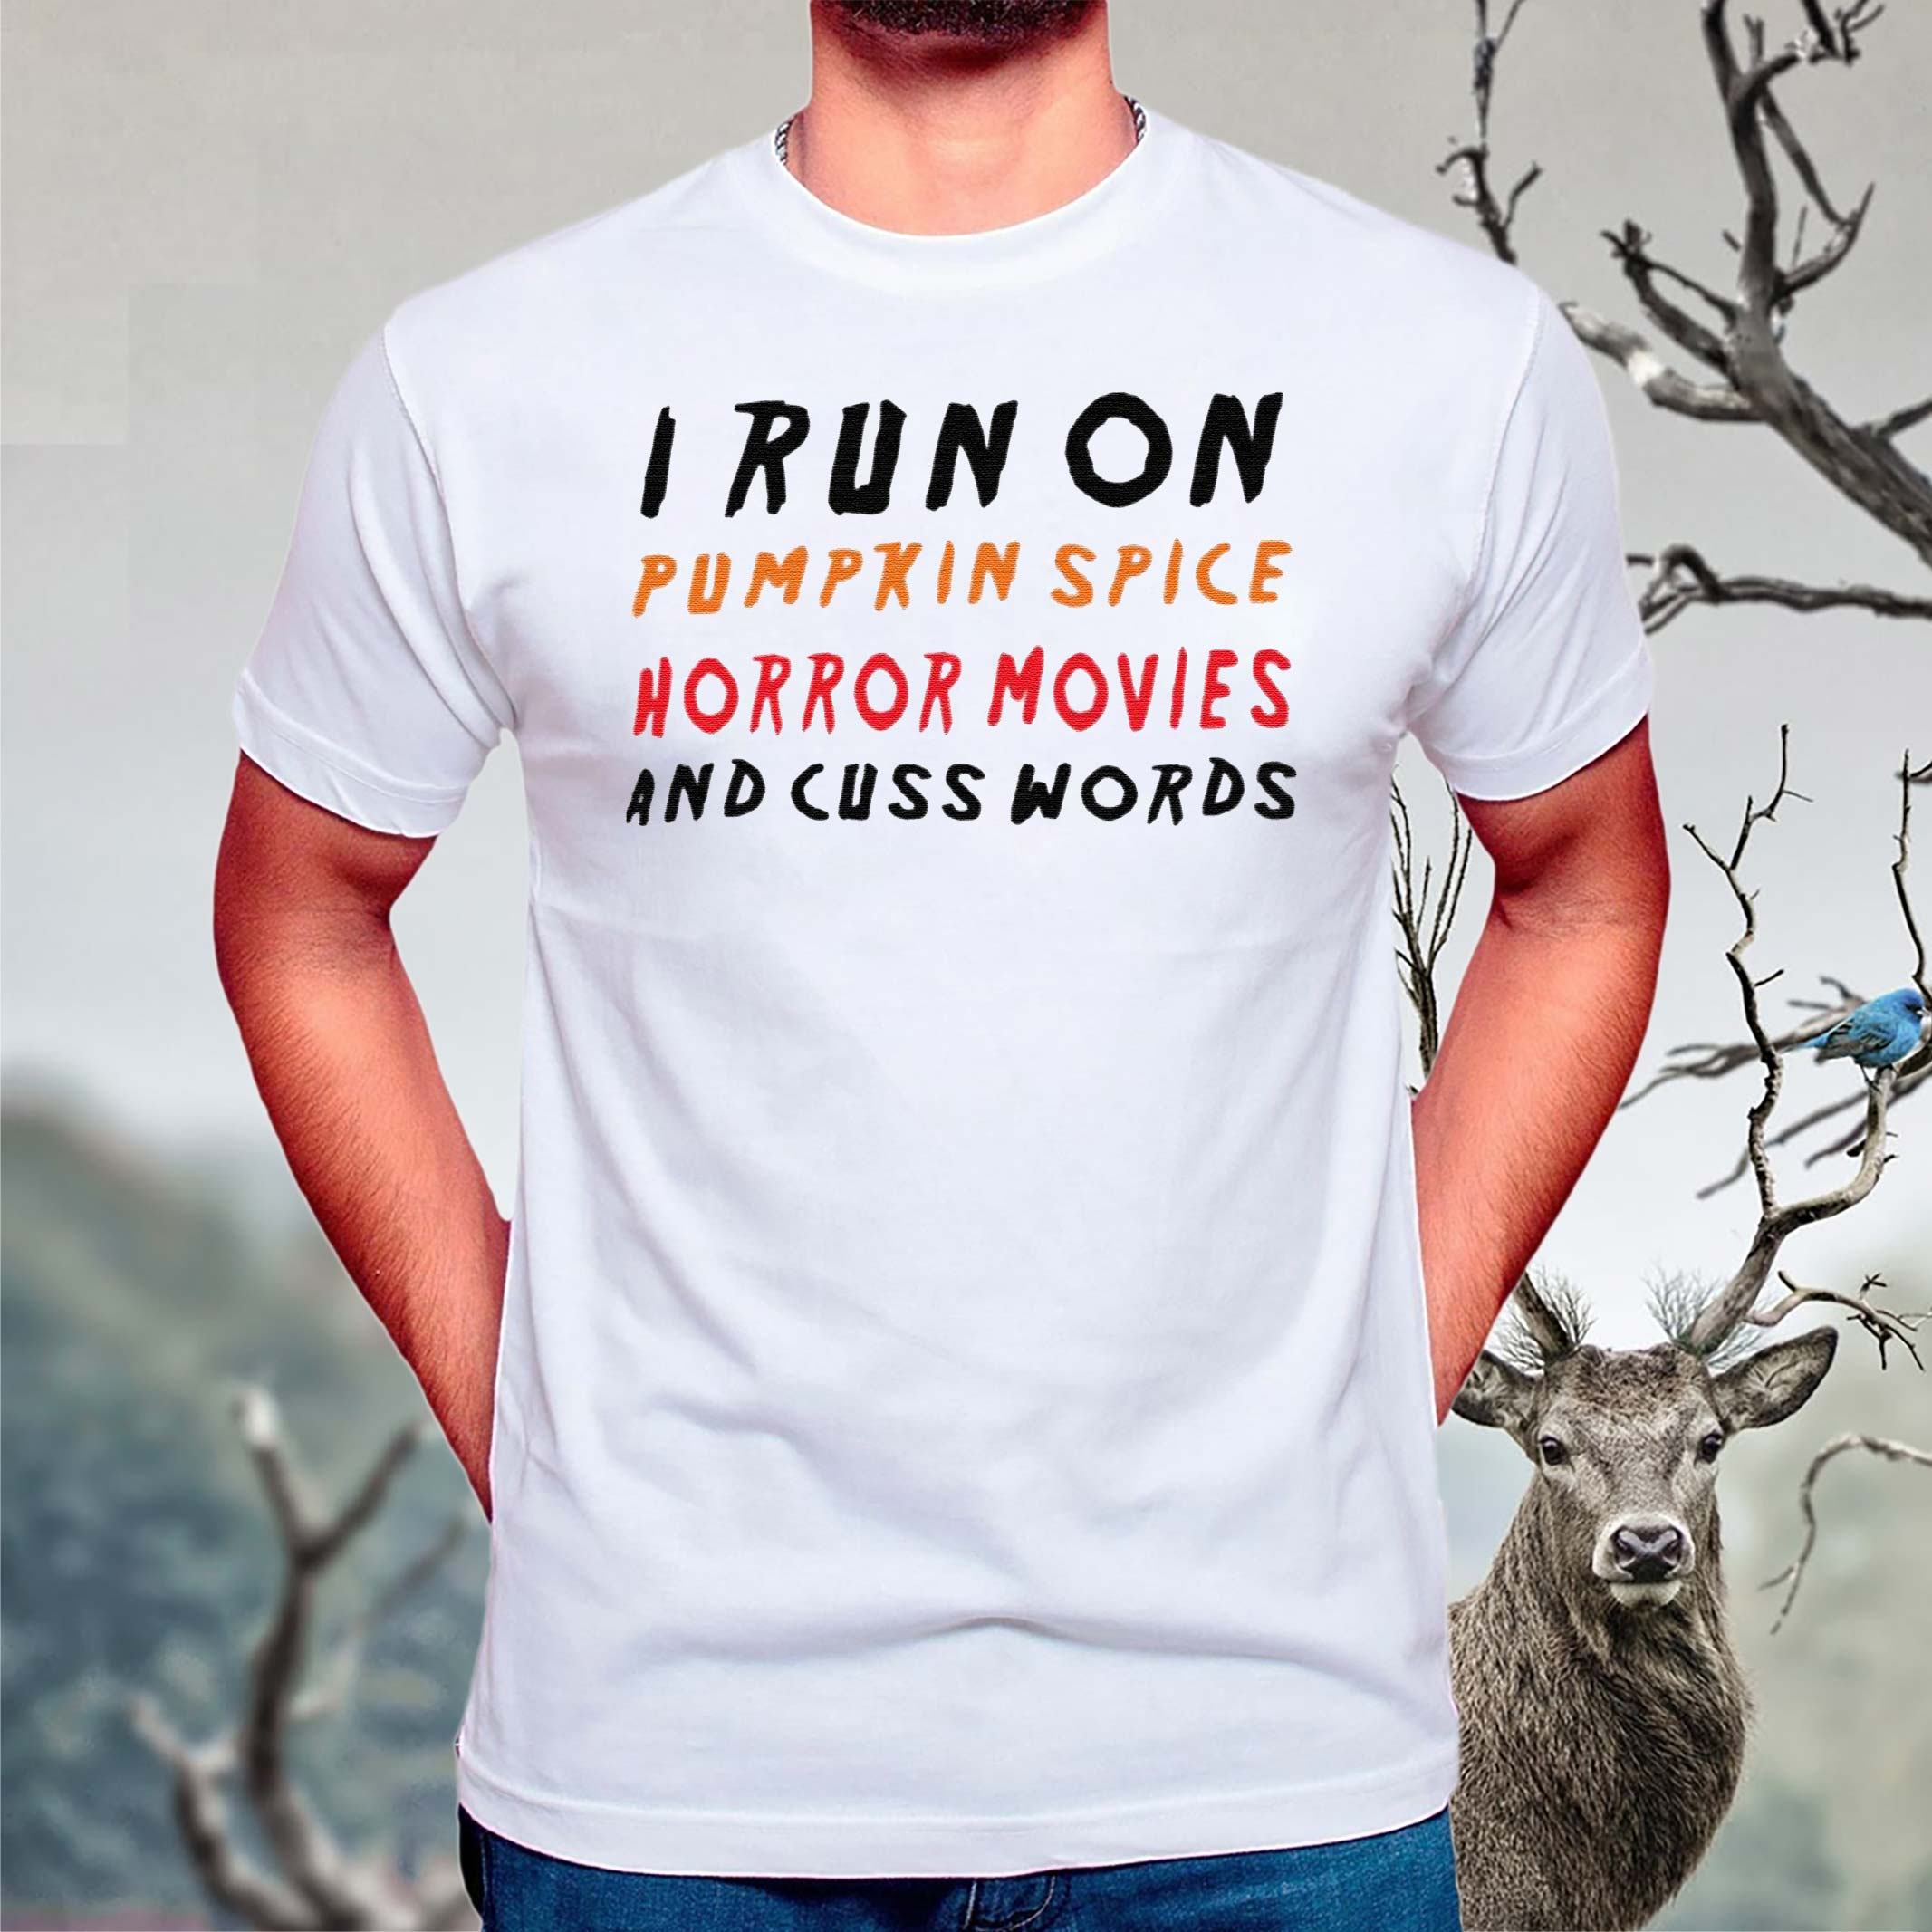 I-Run-On-Pumpkin-Spice-Horror-Movies-And-Cuss-Words-Shirts